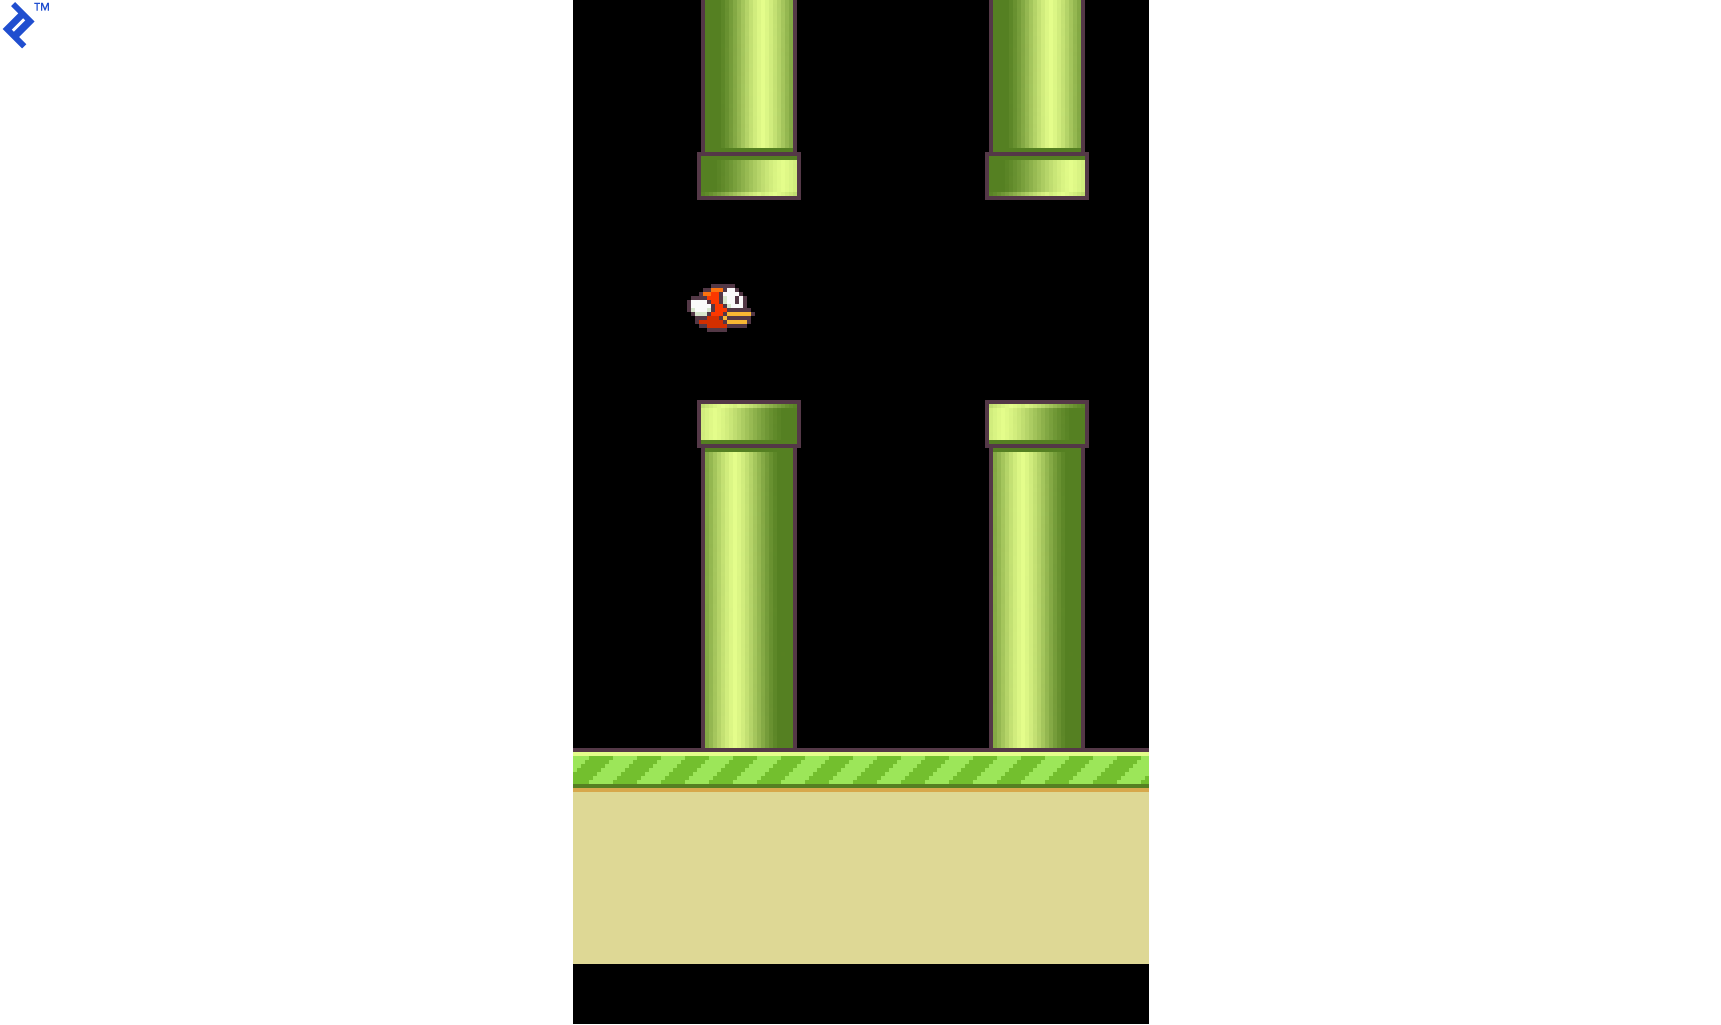 PyTorch Reinforcement Learning: Teaching AI How to Play Flappy Bird